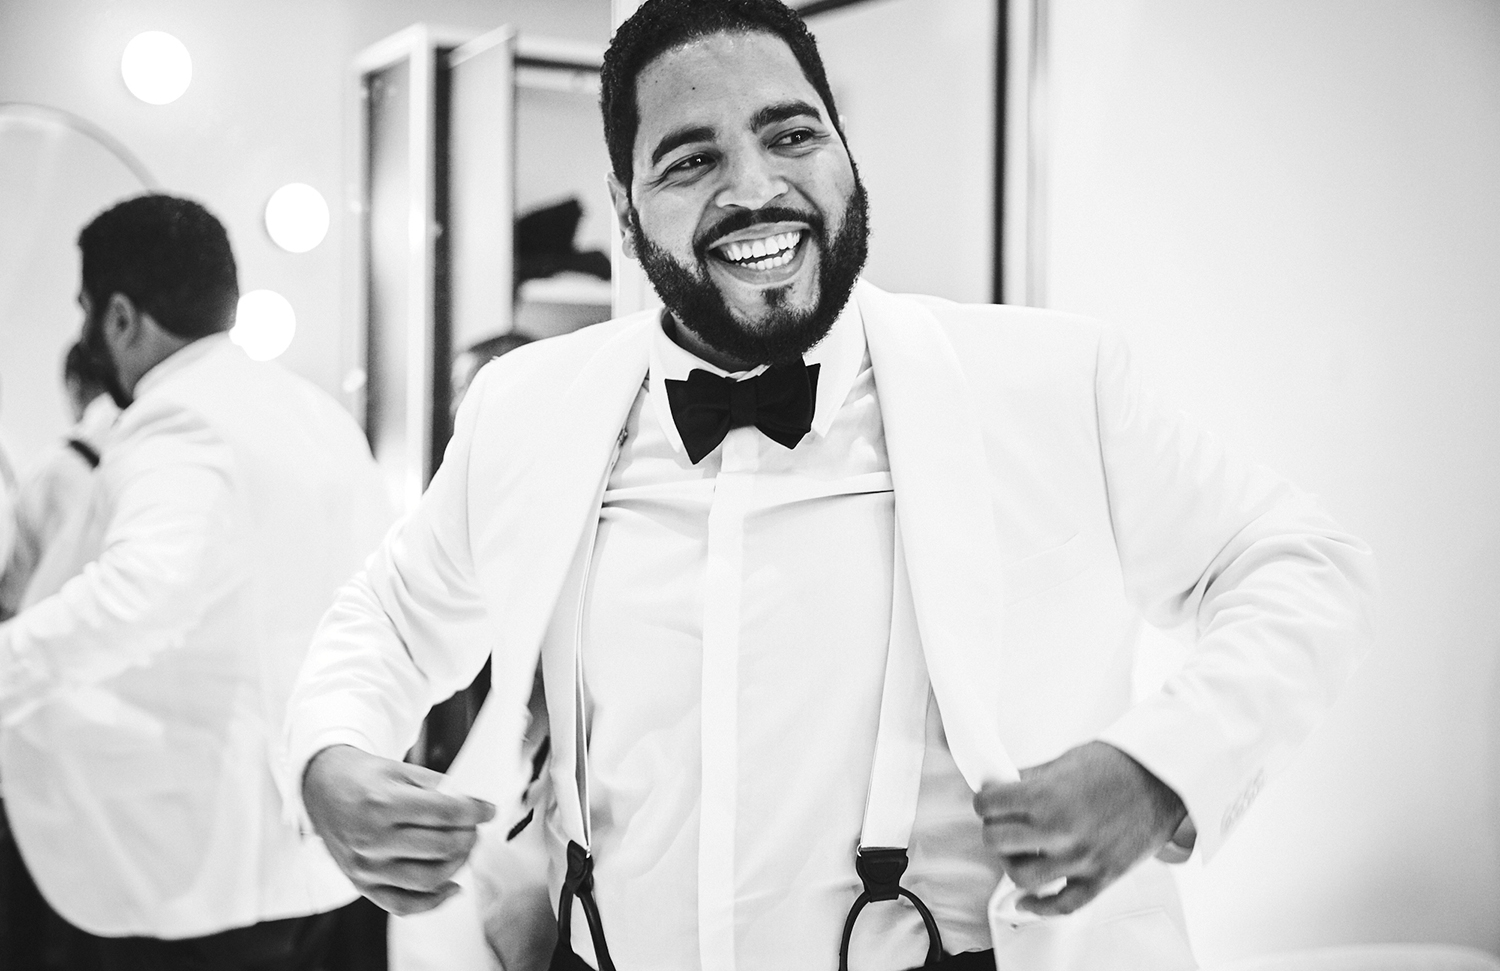 170930_WilliamValeWeddingPhotography_BrooklynWeddingPhotographer_By_BriJohnsonWeddings_0010.jpg